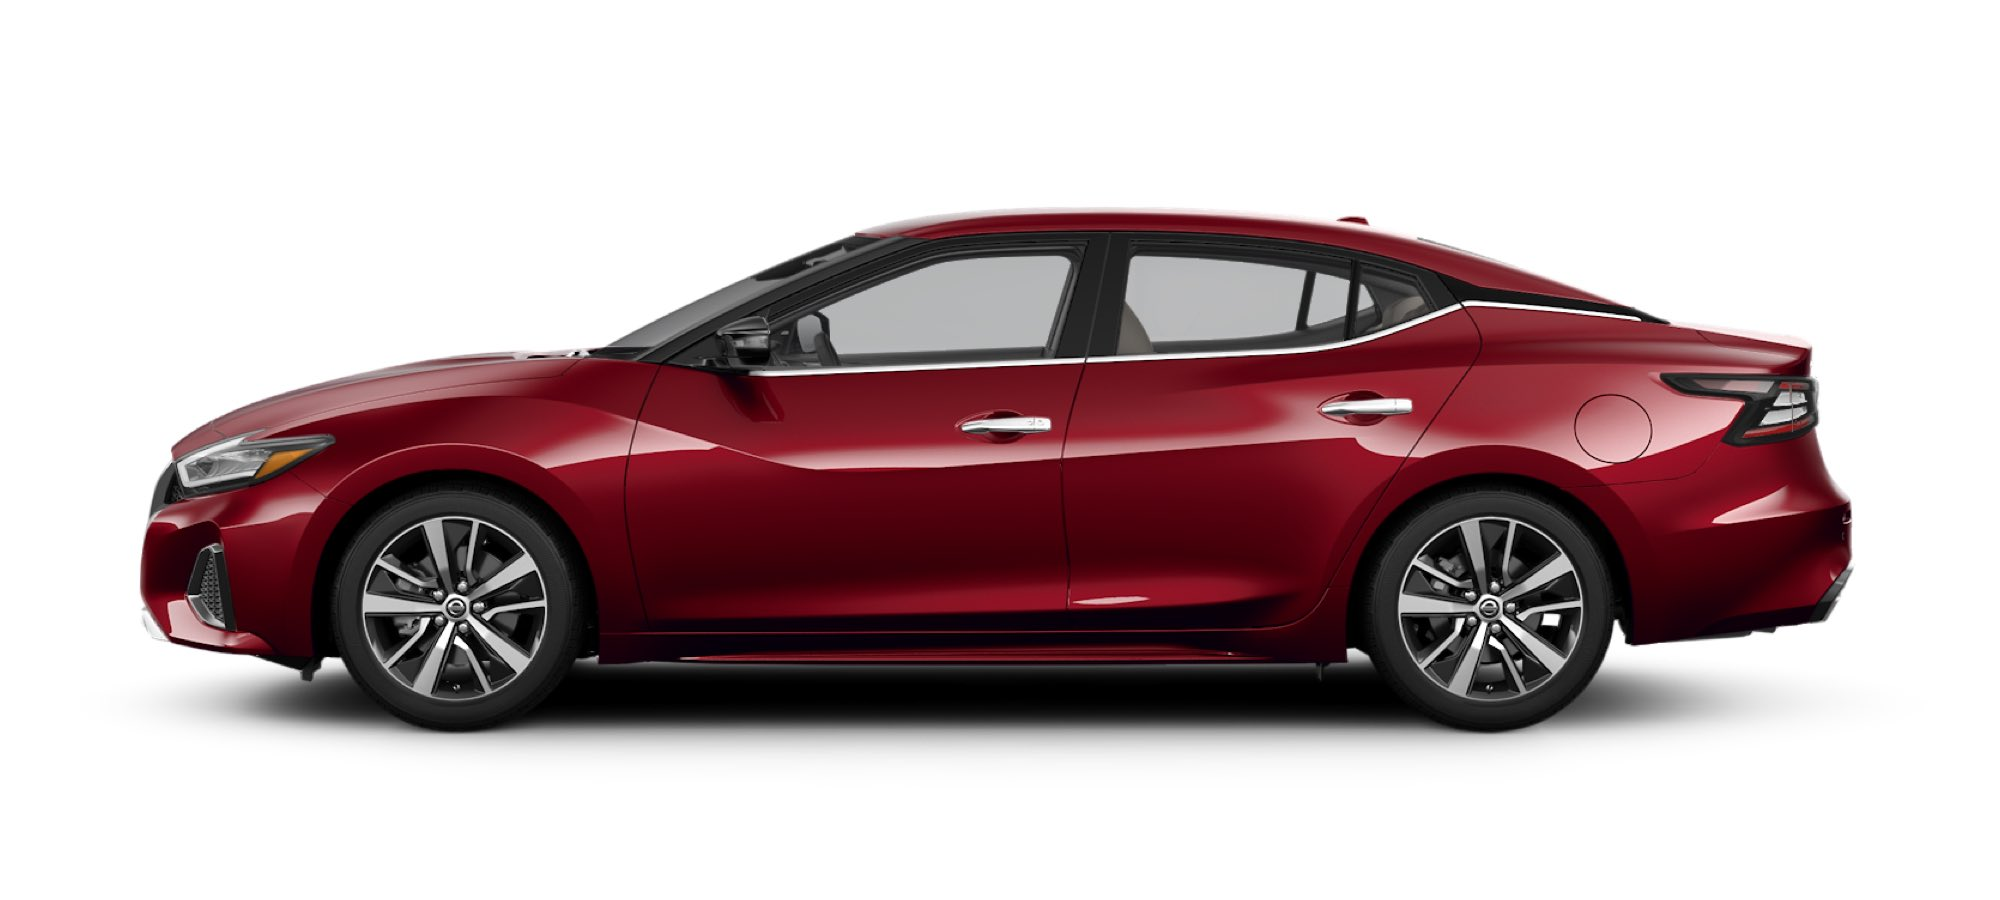 2021 Nissan Maxima in Carnelian Red Tintcoat